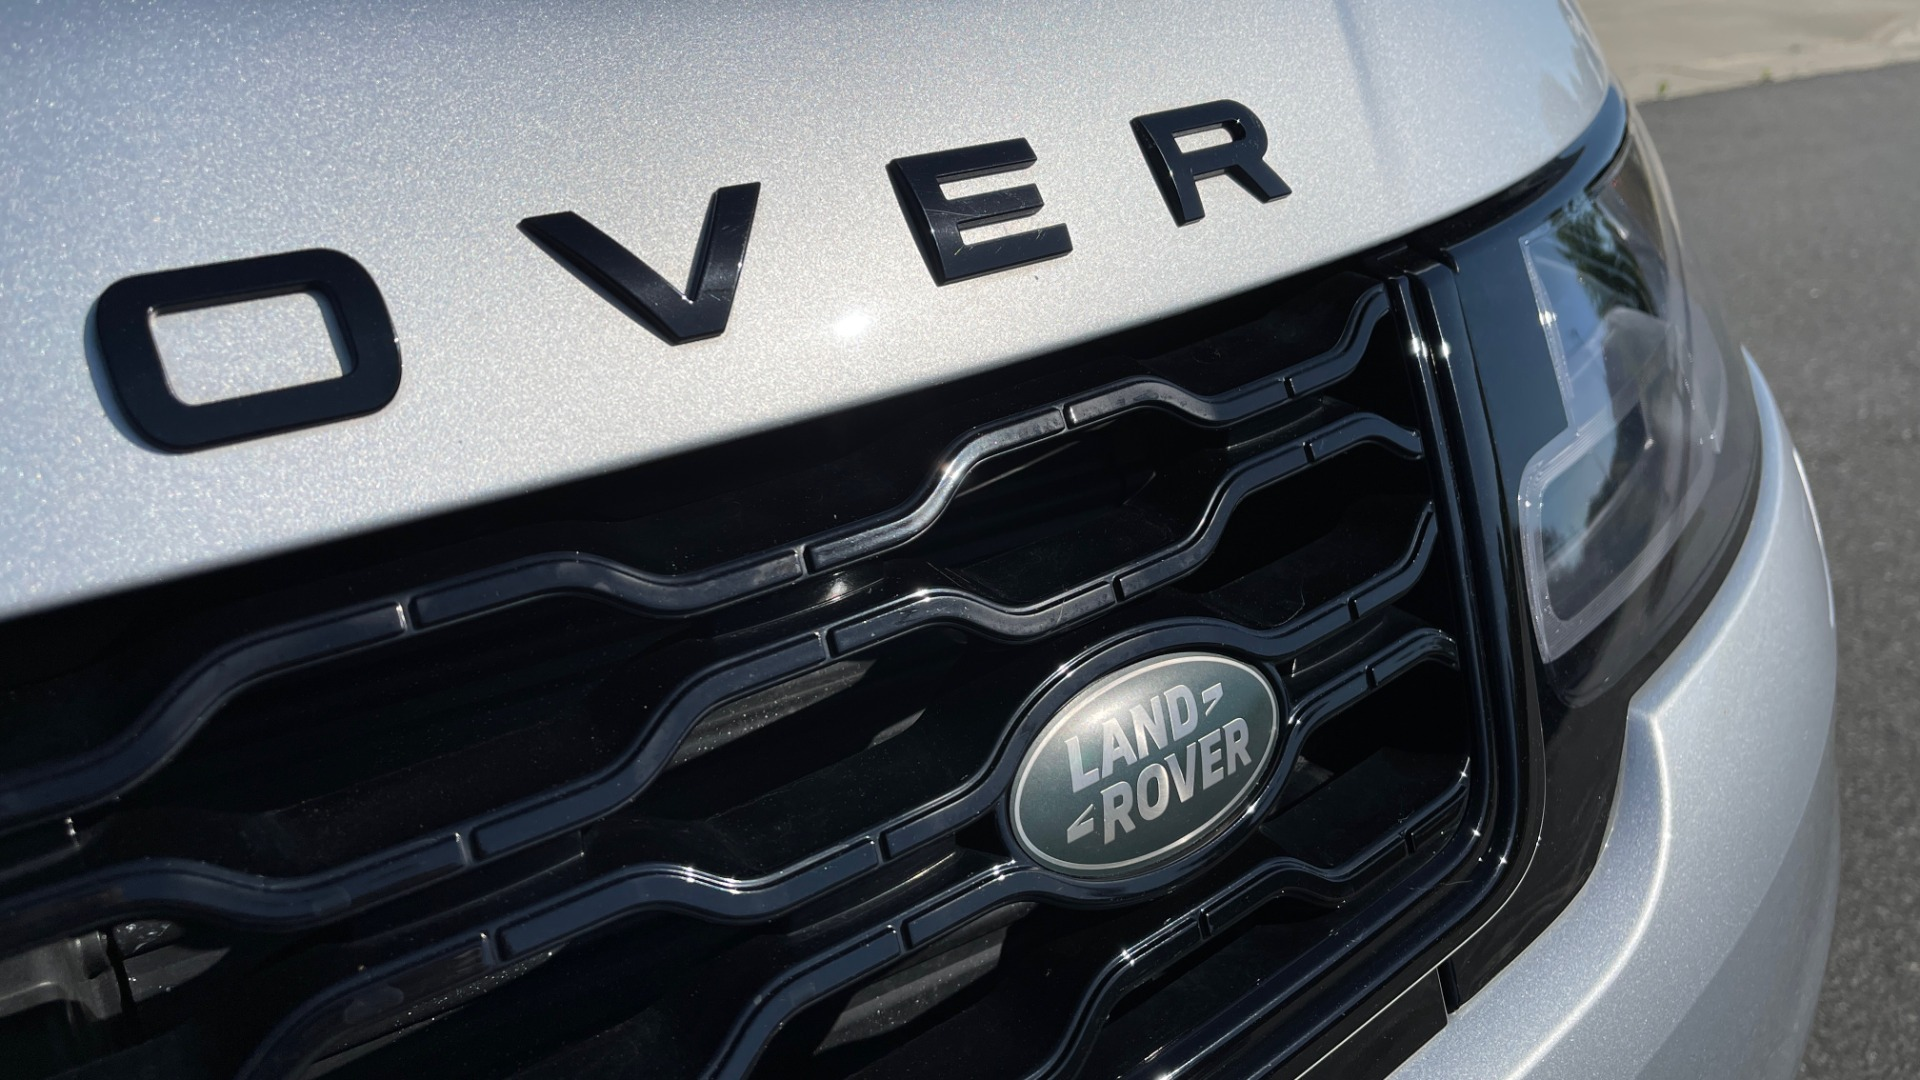 Used 2019 Land Rover RANGE ROVER SPORT HSE DYNAMIC / 3.0L SC V6 / 8-SPD / APPLE / NAV / SUNROOF / REARVIEW for sale Sold at Formula Imports in Charlotte NC 28227 13